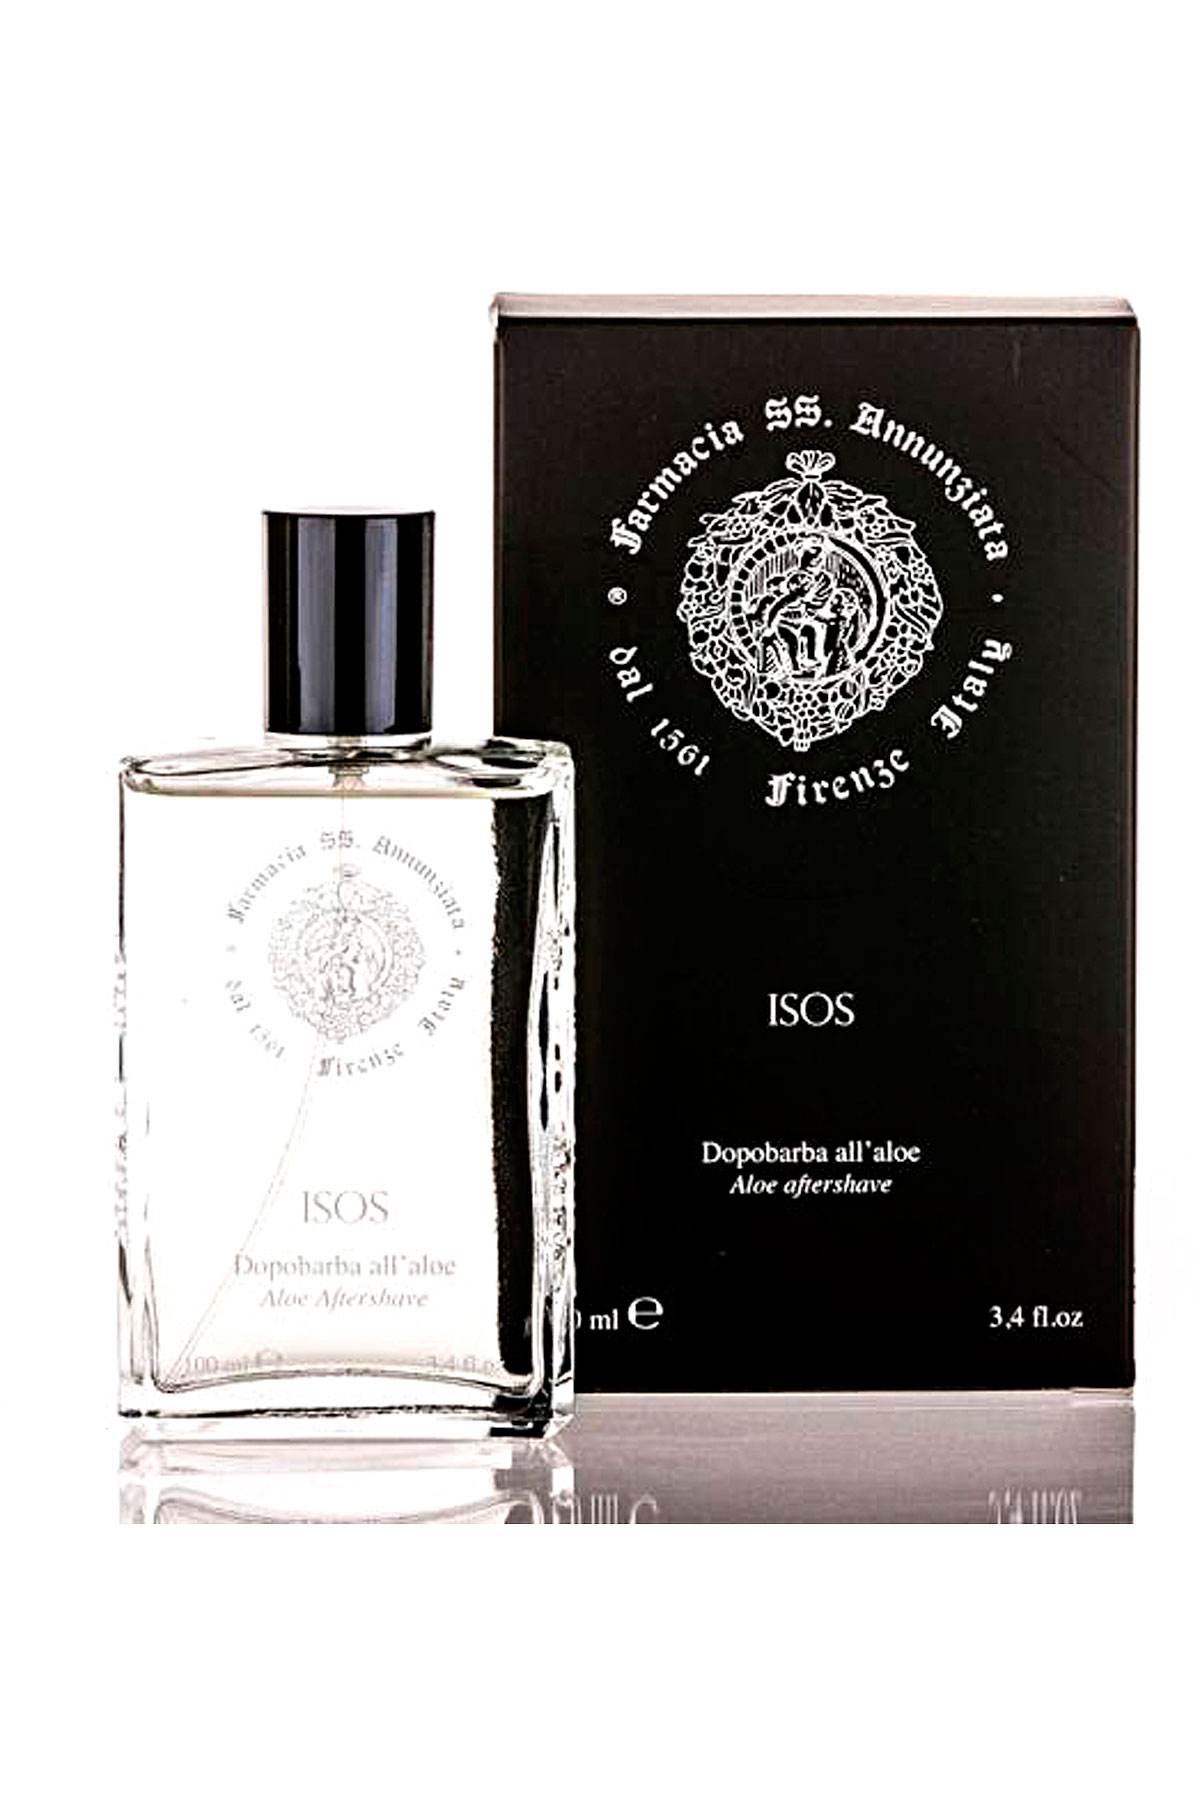 Farmacia Ss Annunziata 1561 Shave for Men, Isos - Aftershave - 100 Ml, 2019, 100 ml